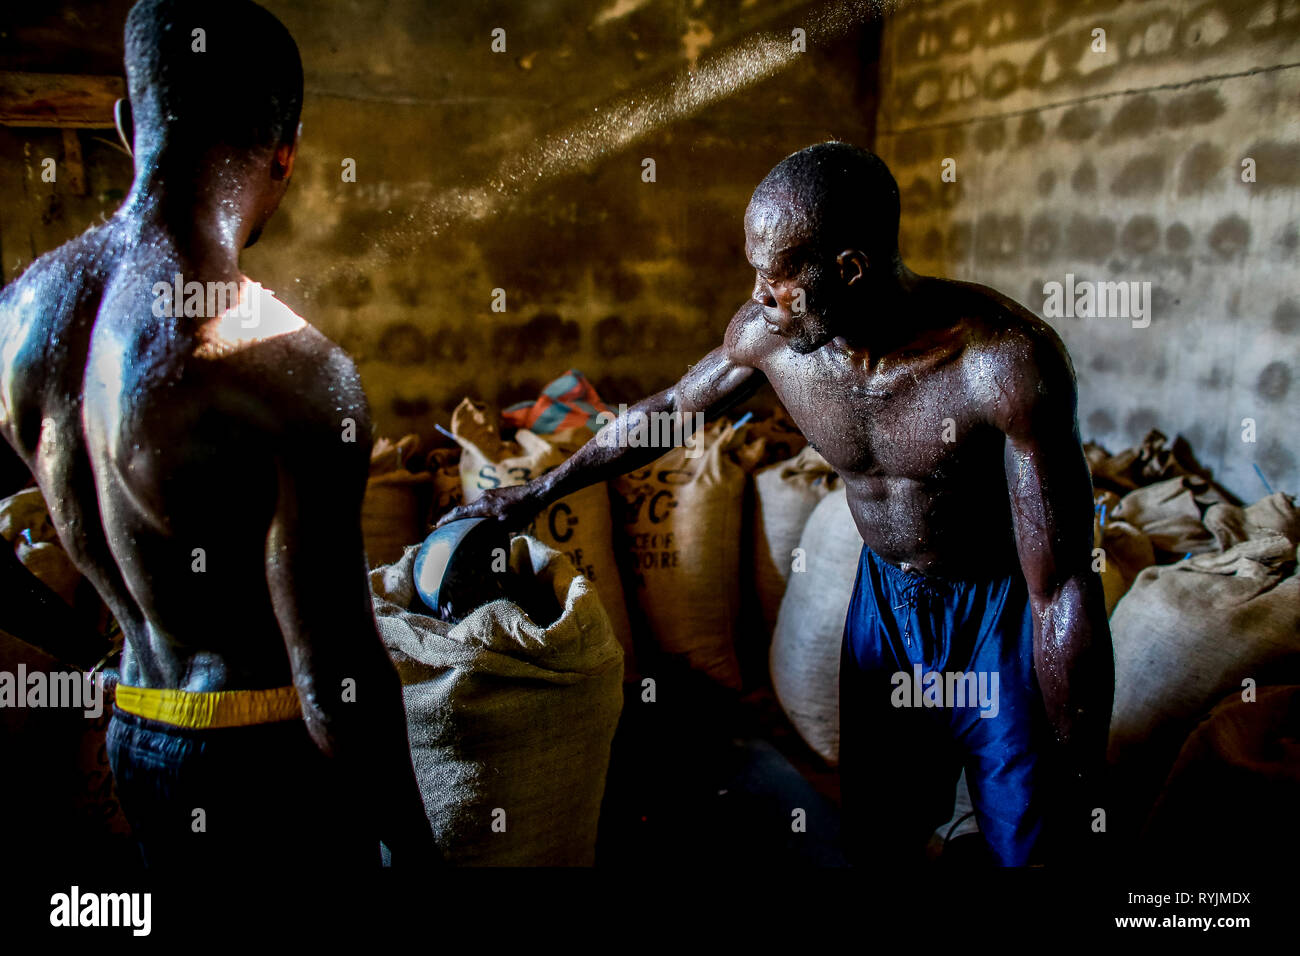 Cocoa workers weighing a bag in Agboville, Ivory Coast. Stock Photo